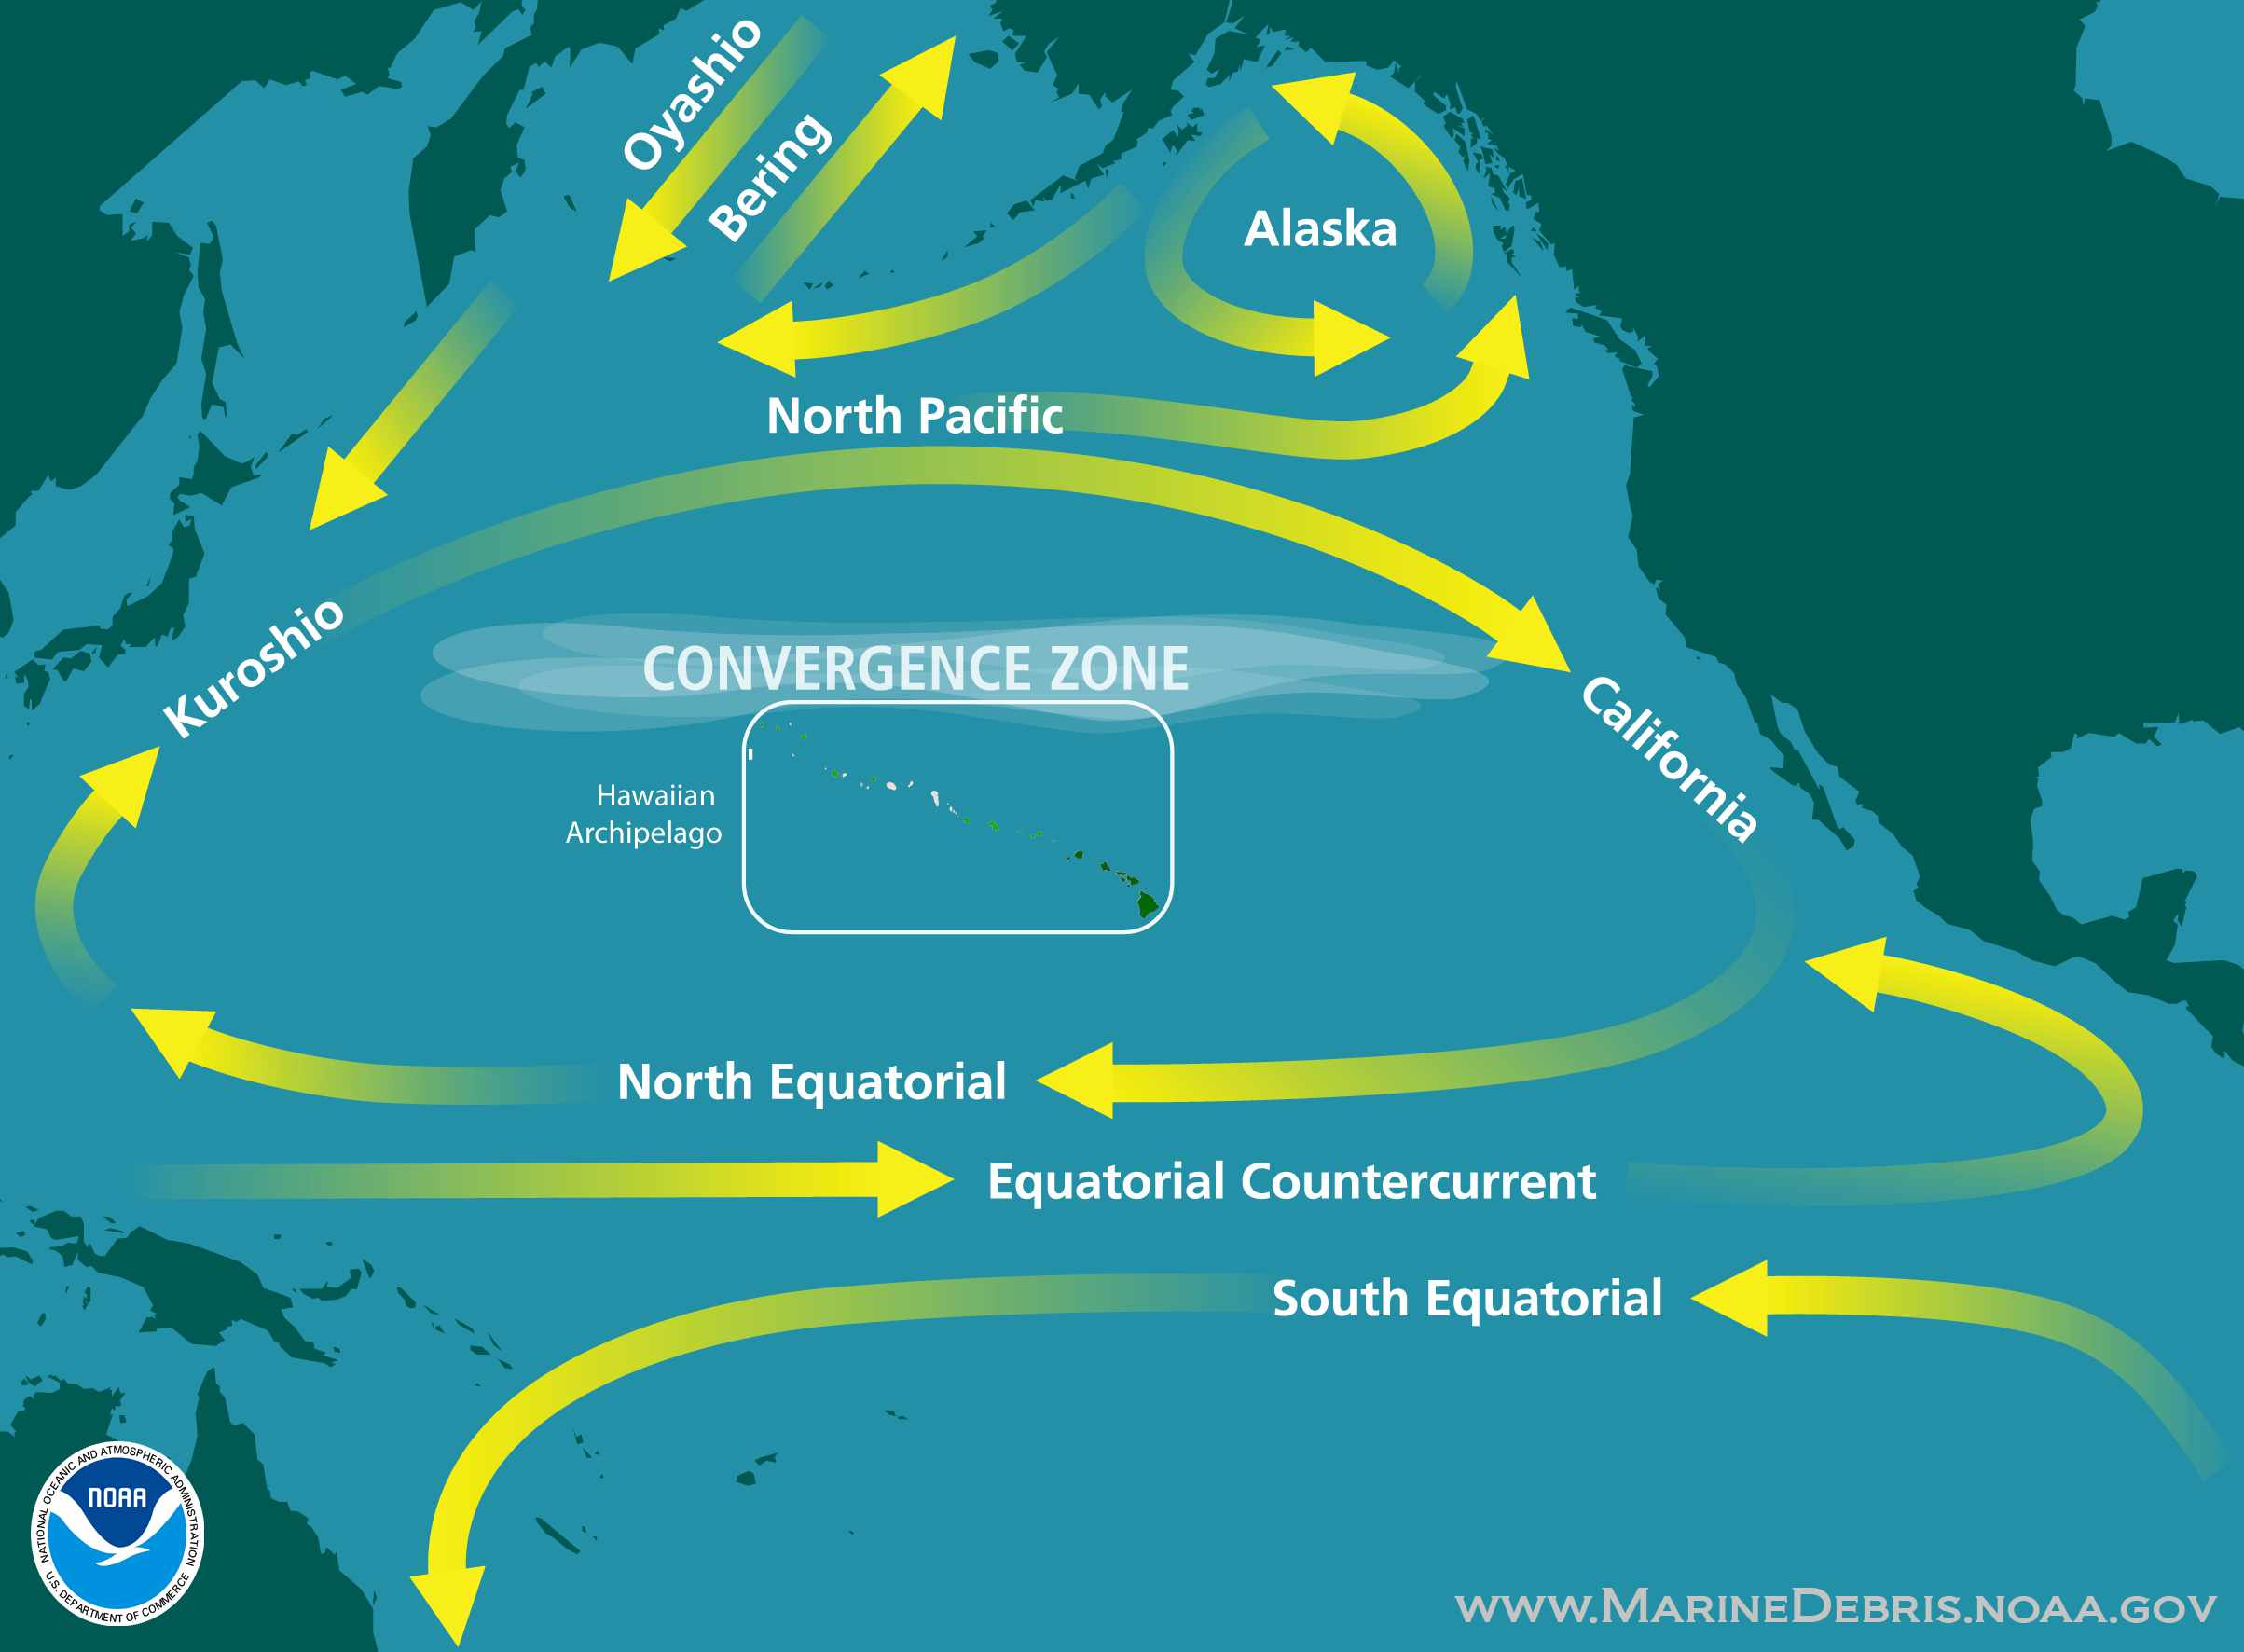 Illustration showing the convergence zone of ocean currents in the North Pacific